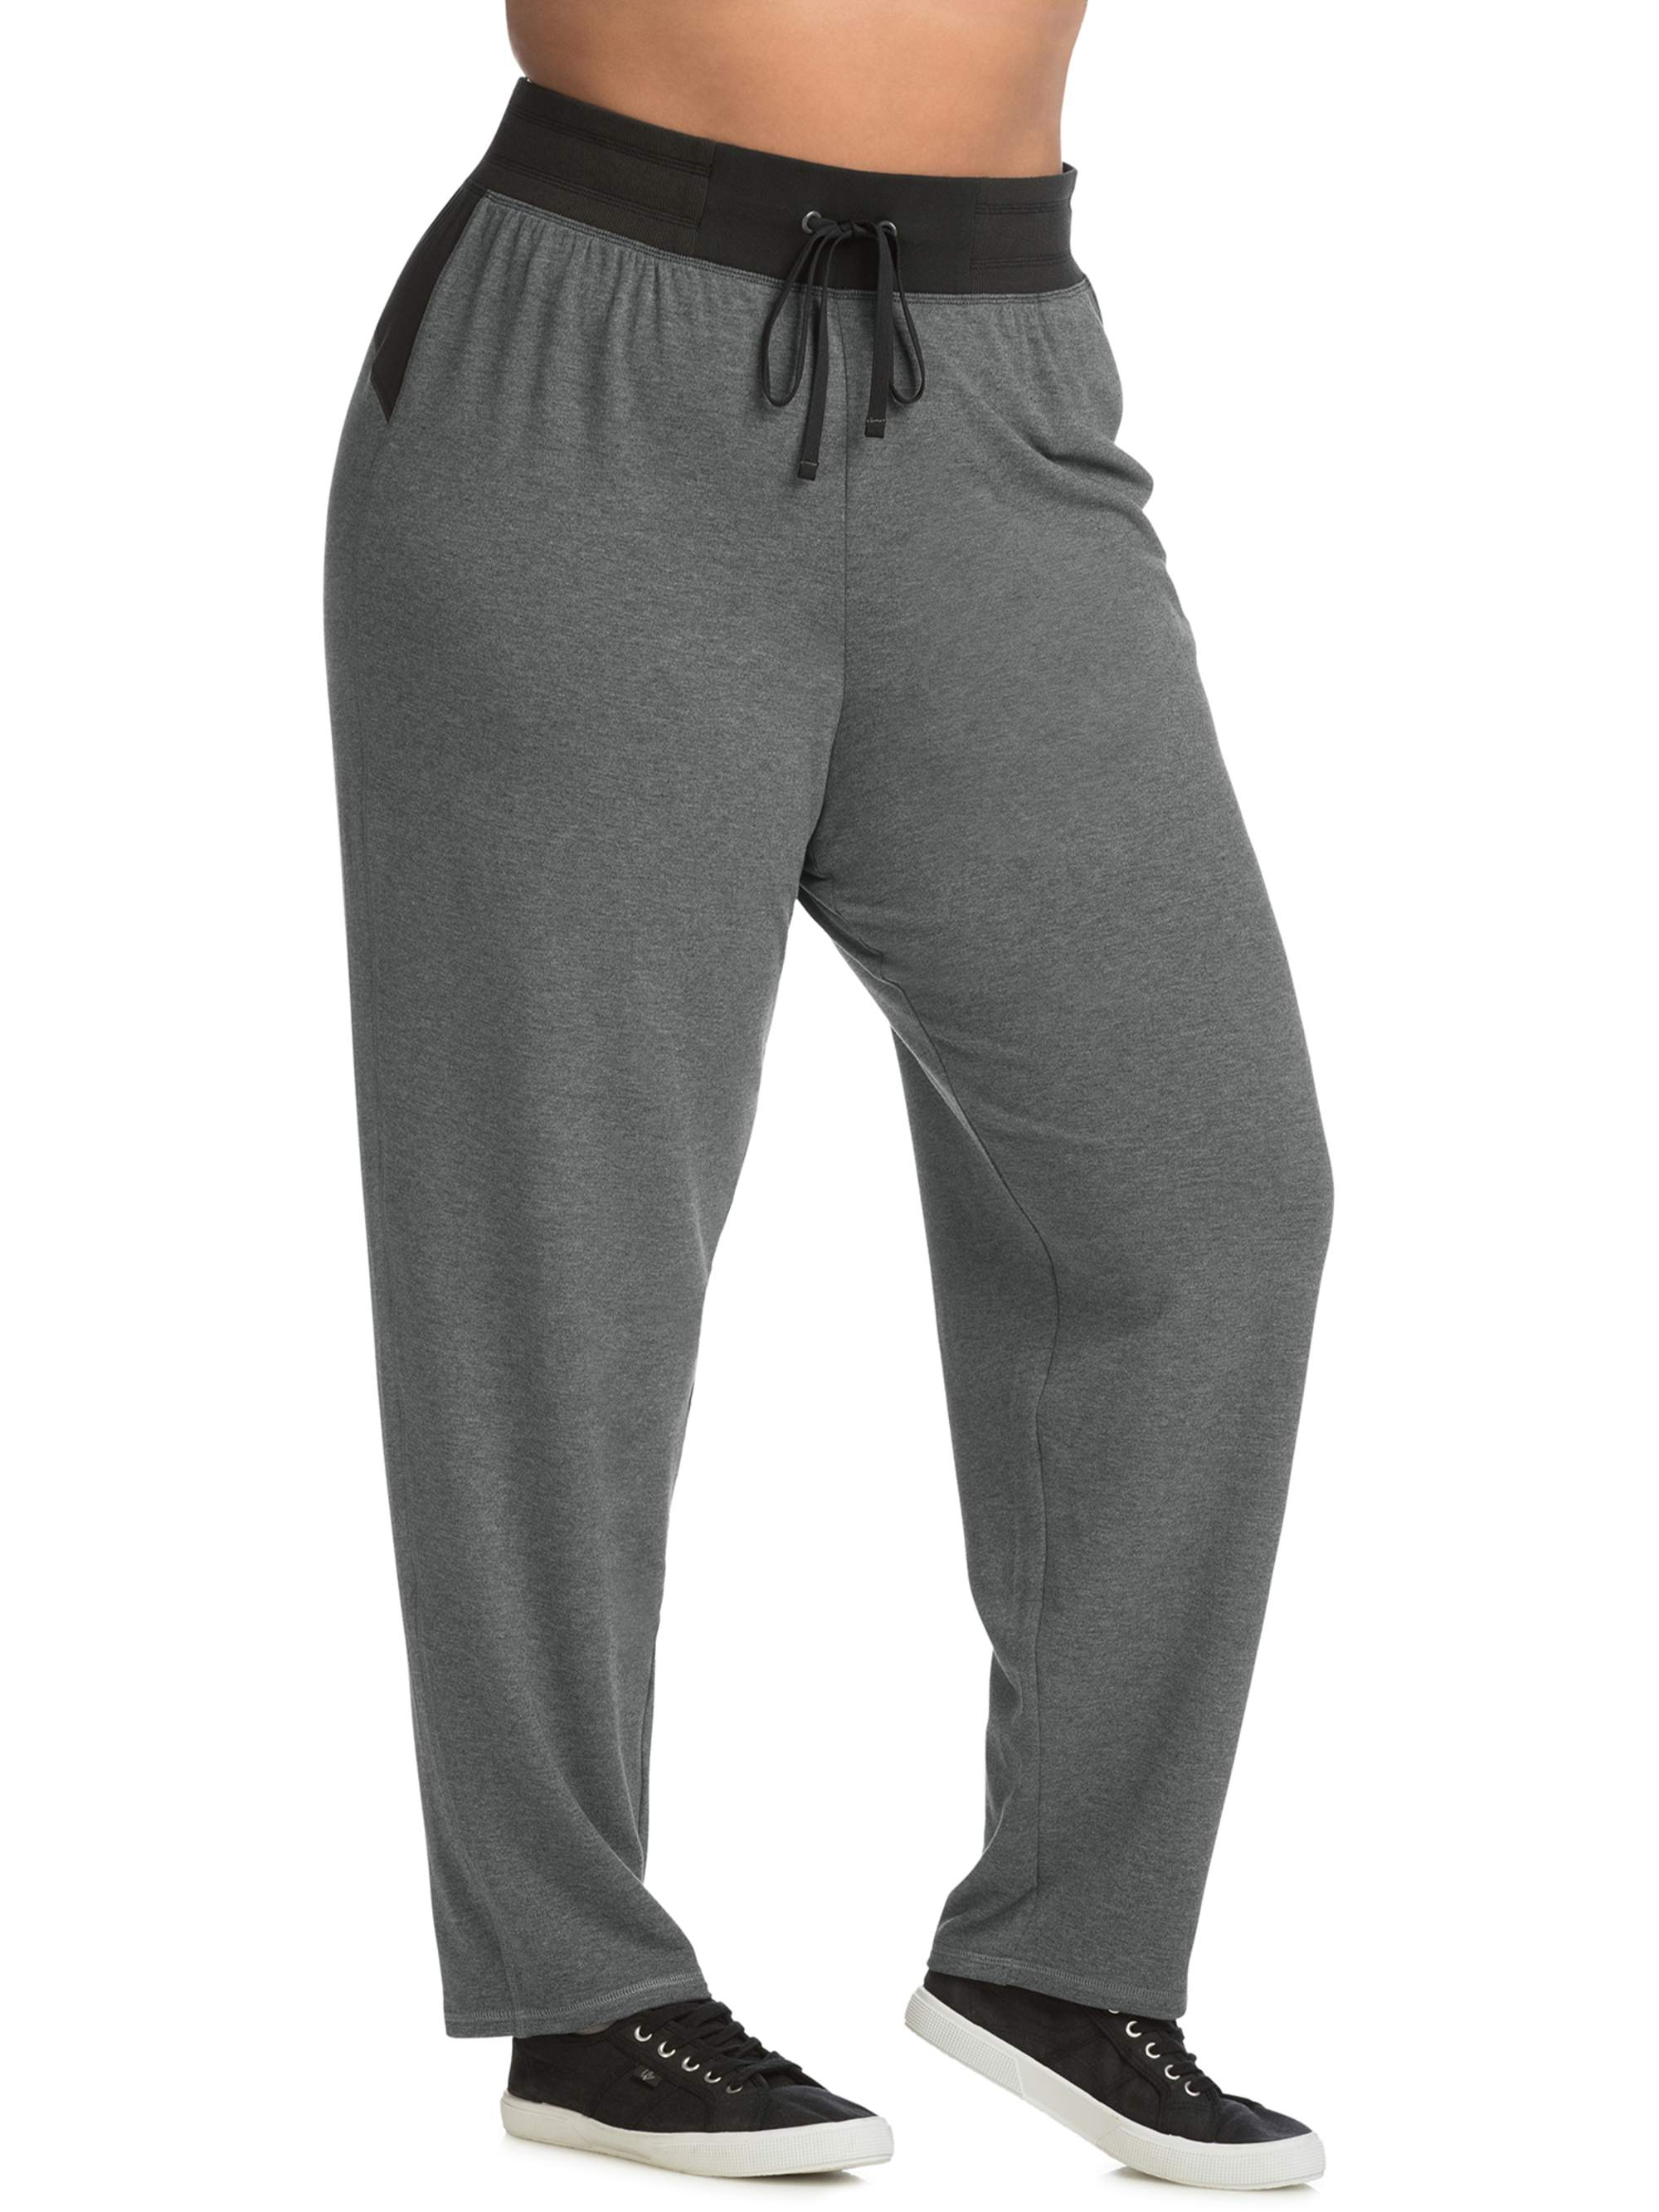 d441699144 Just My Size - Just My Size Active French Terry Contrast Performance Pants  - Walmart.com